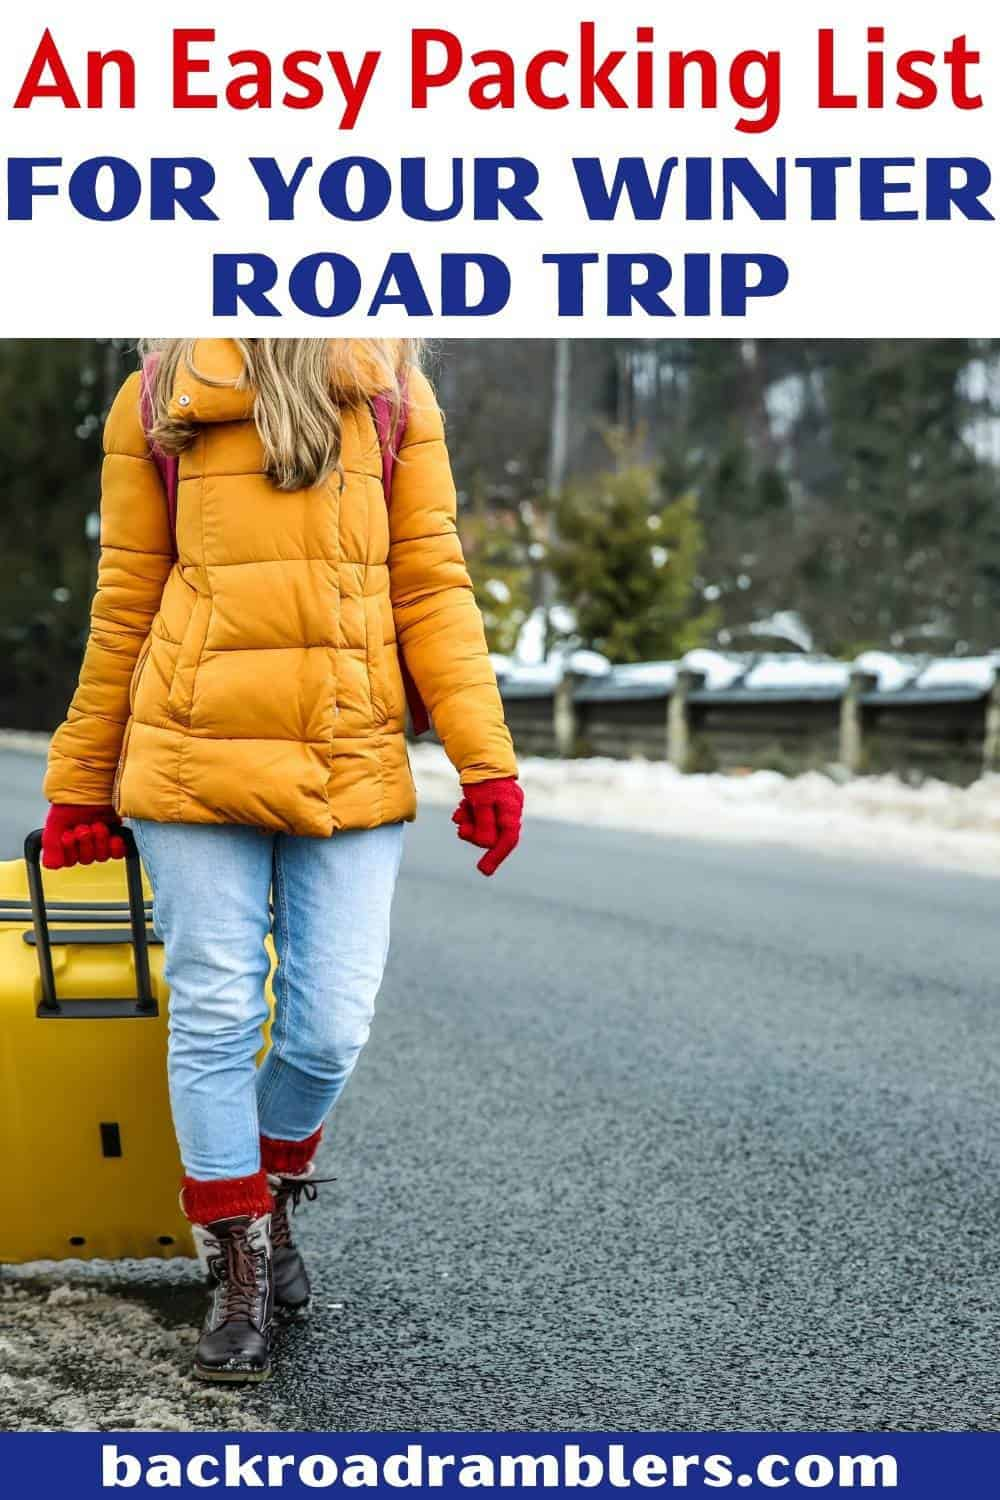 A woman with a yellow jacket pulls a yellow suitcase down the road in the winter. Text overlay: An easy packing list for your winter road trip.